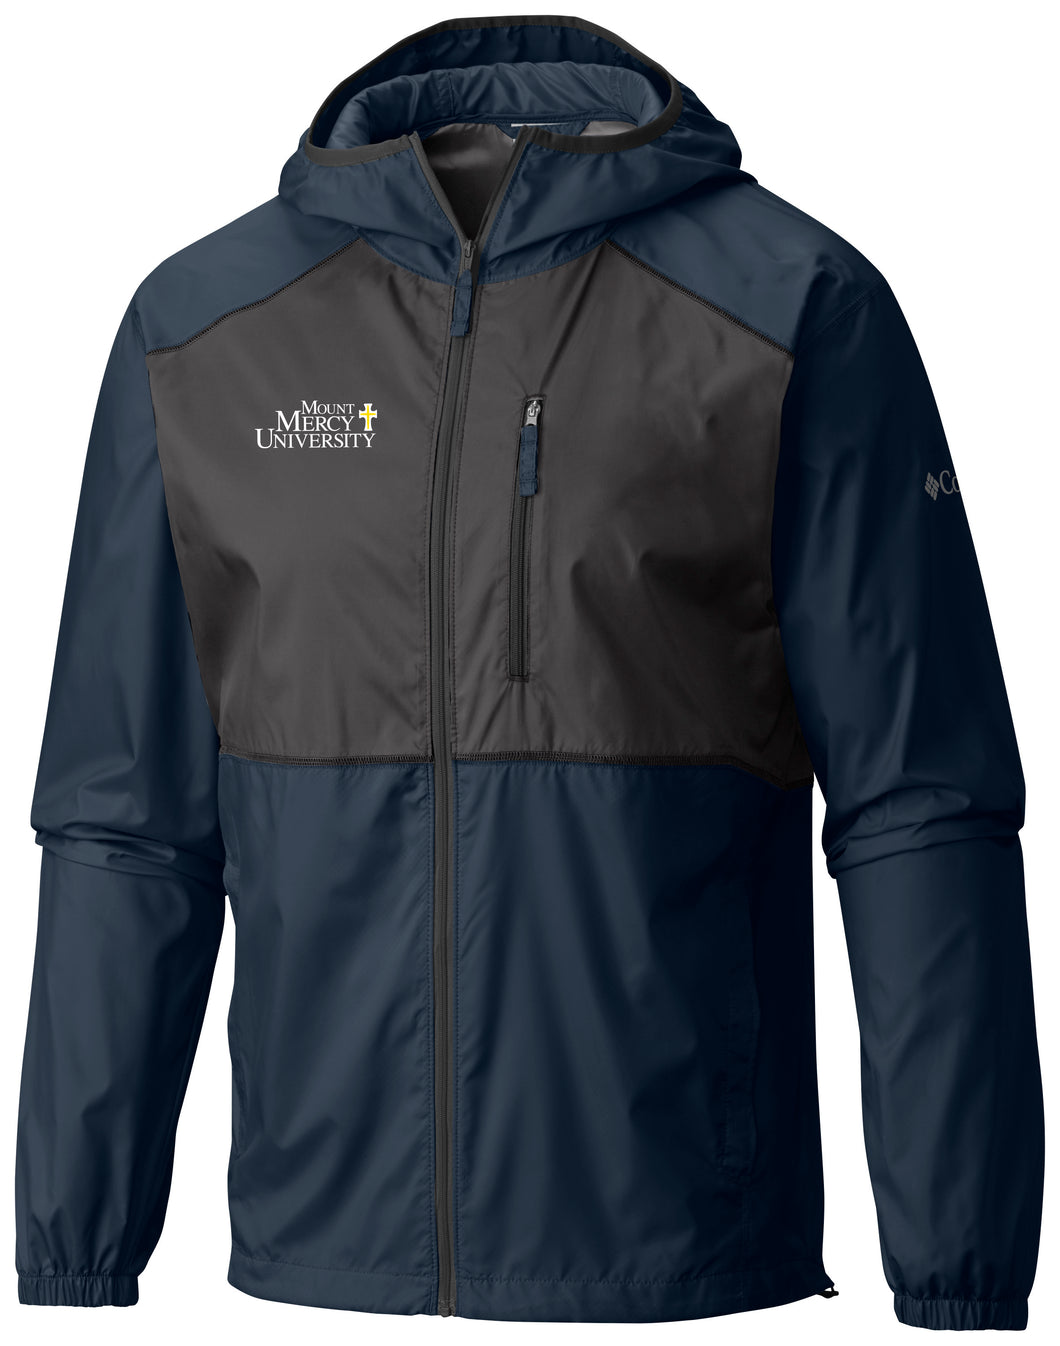 Columbia Men's Flash Forward Windbreaker, Collegiate Navy